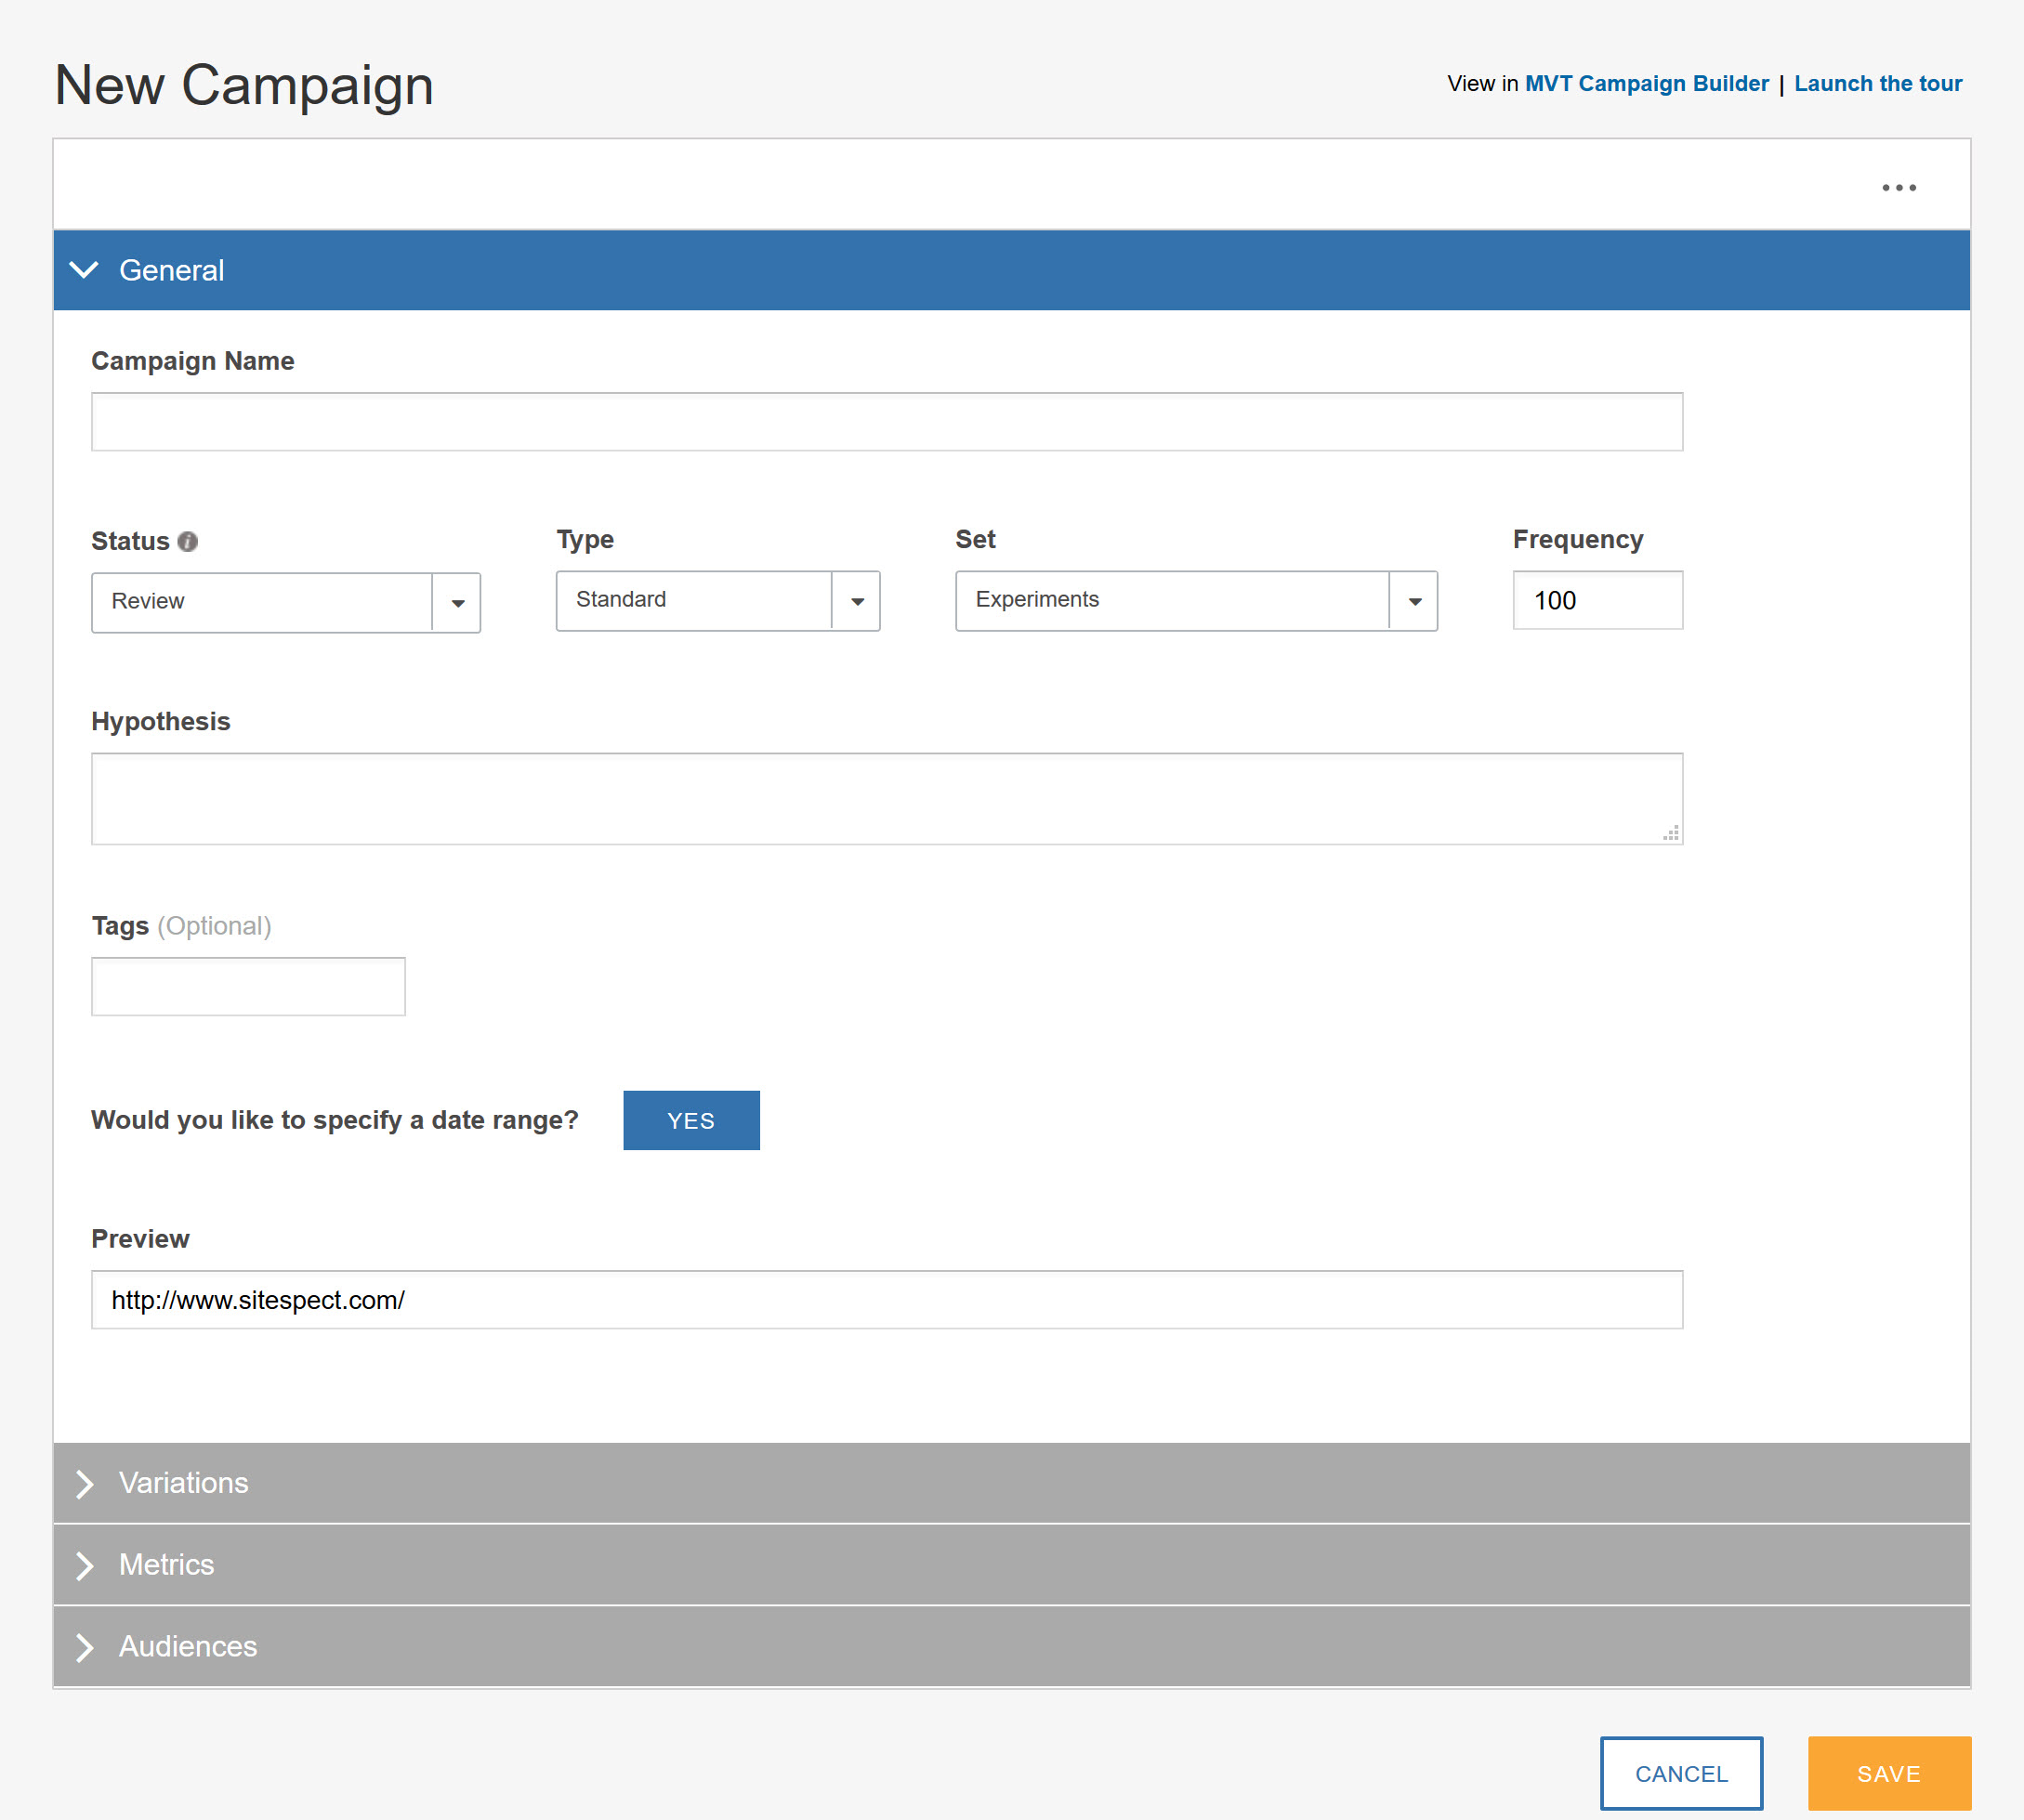 How do I build a Campaign with the Visual Editor - New Campaign